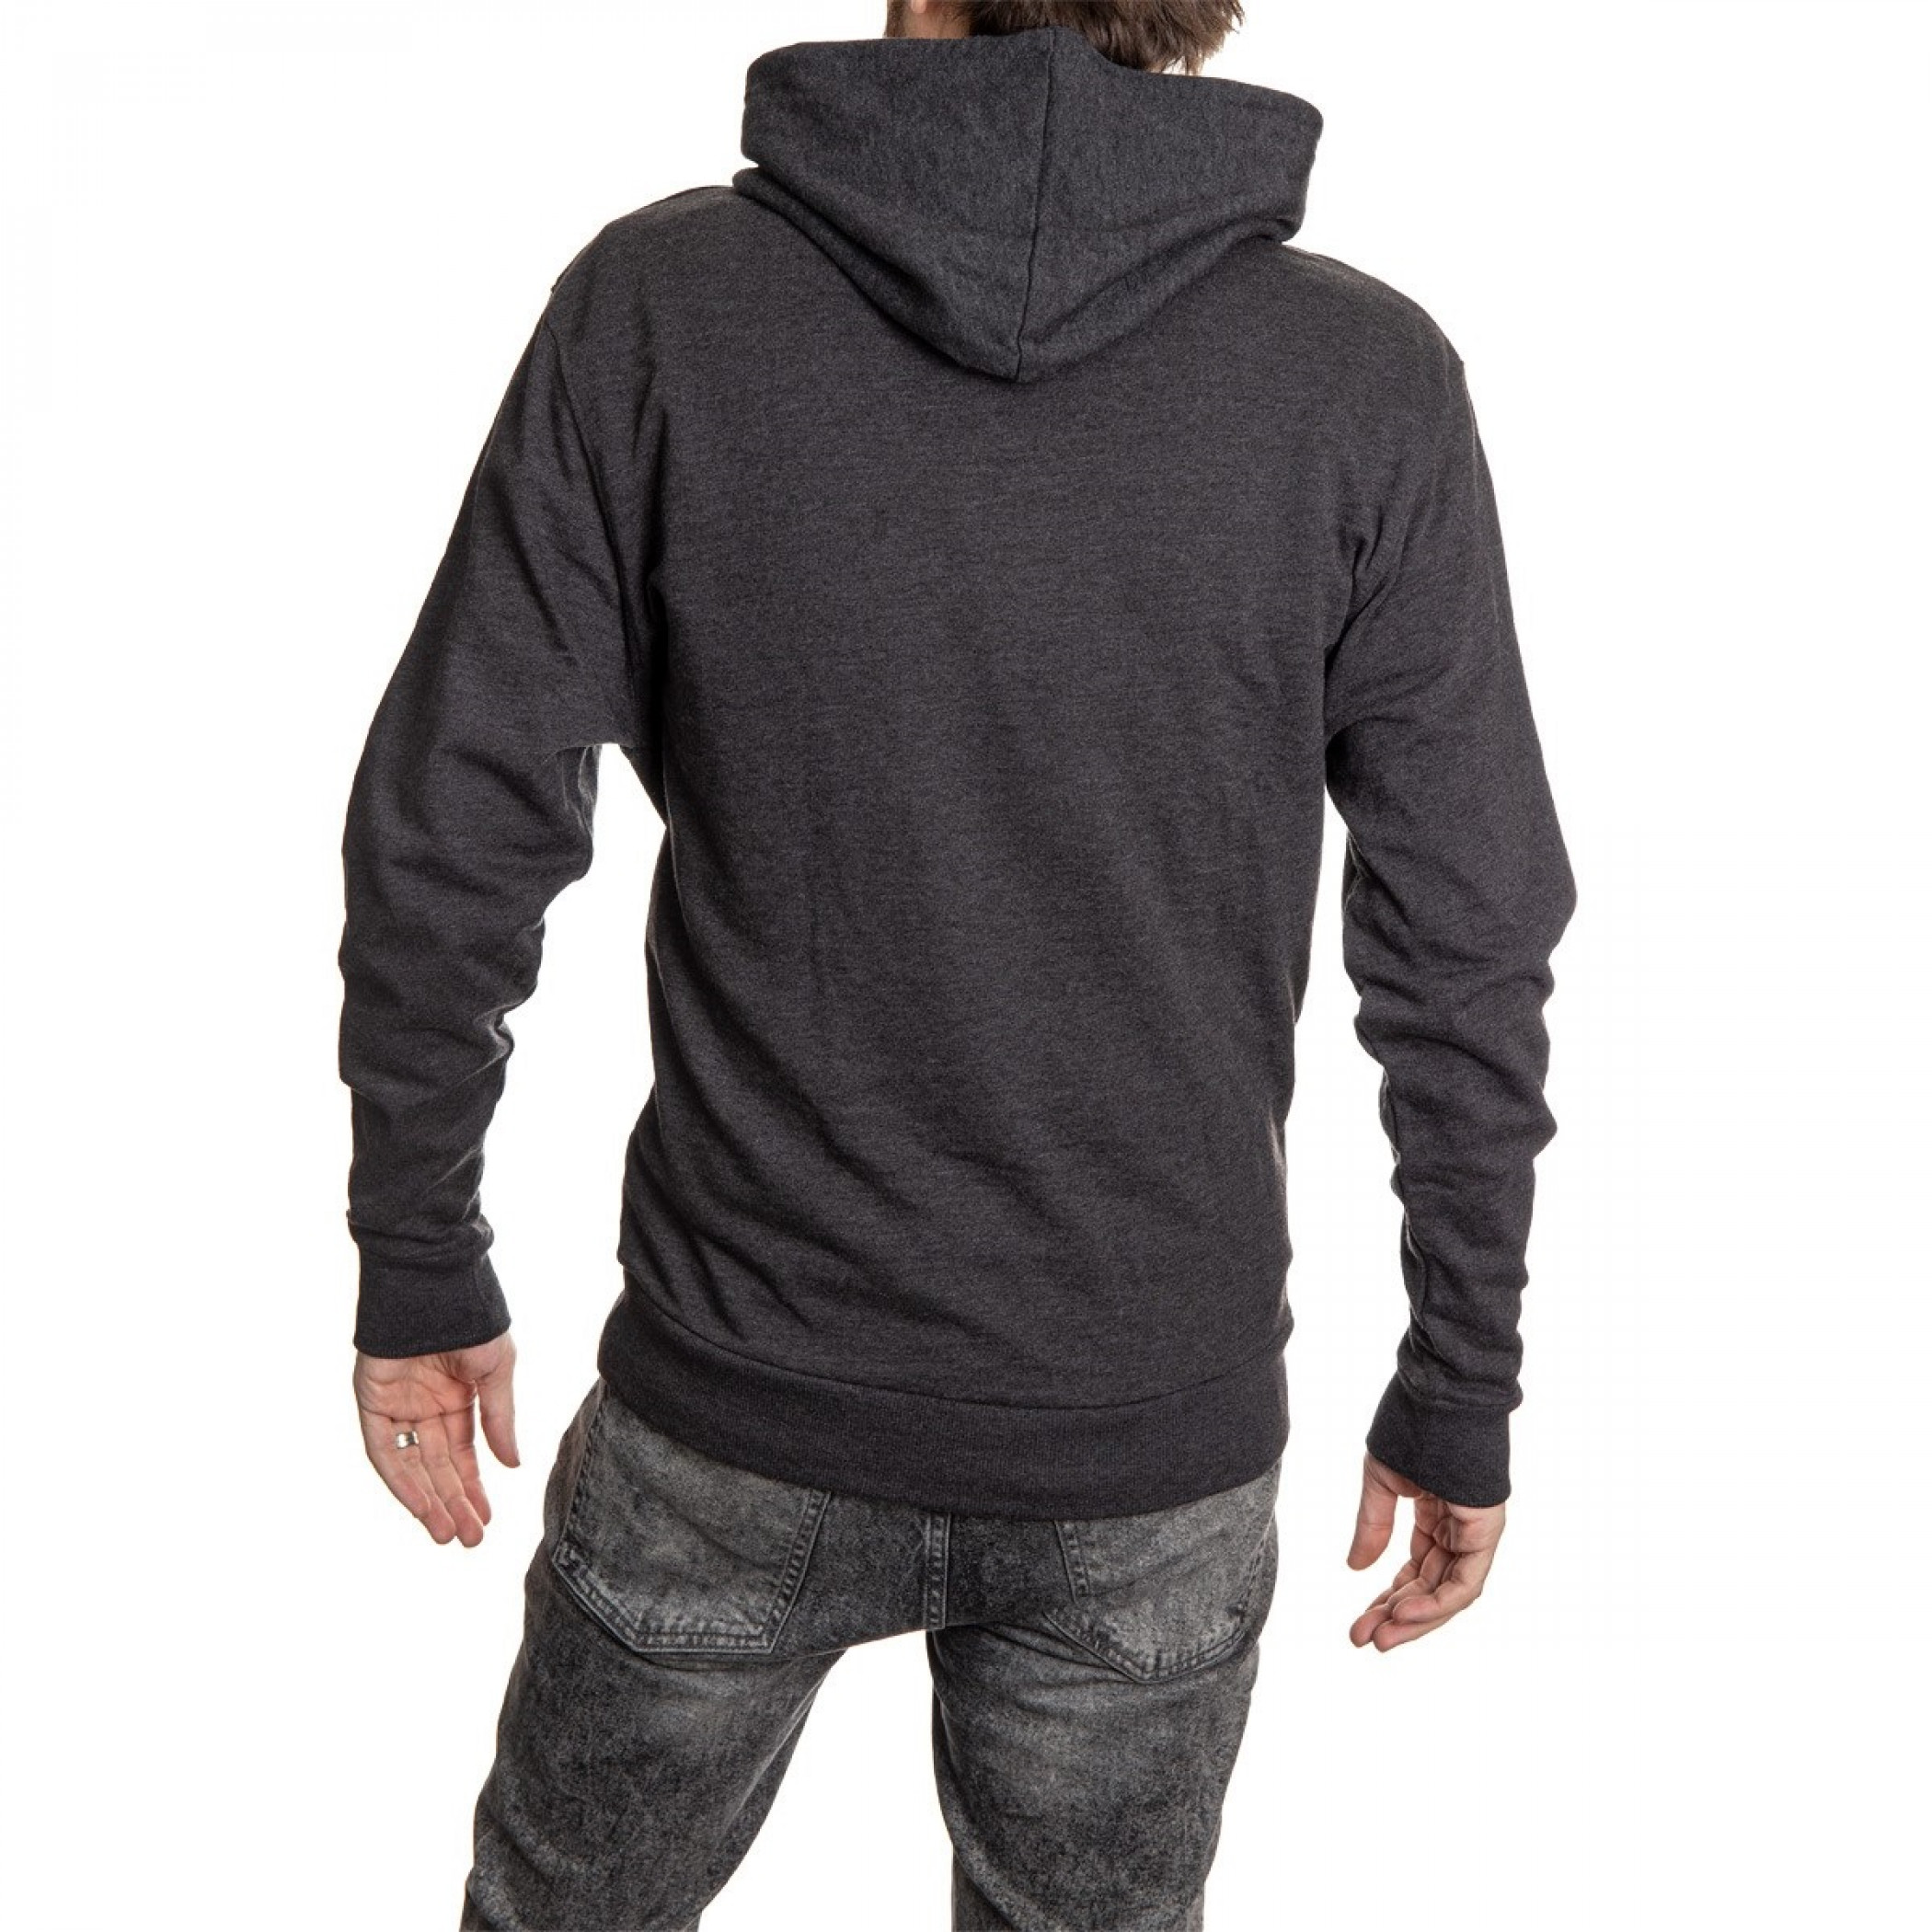 Corona Extra Washed Label Grey Hooded Sweatshirt